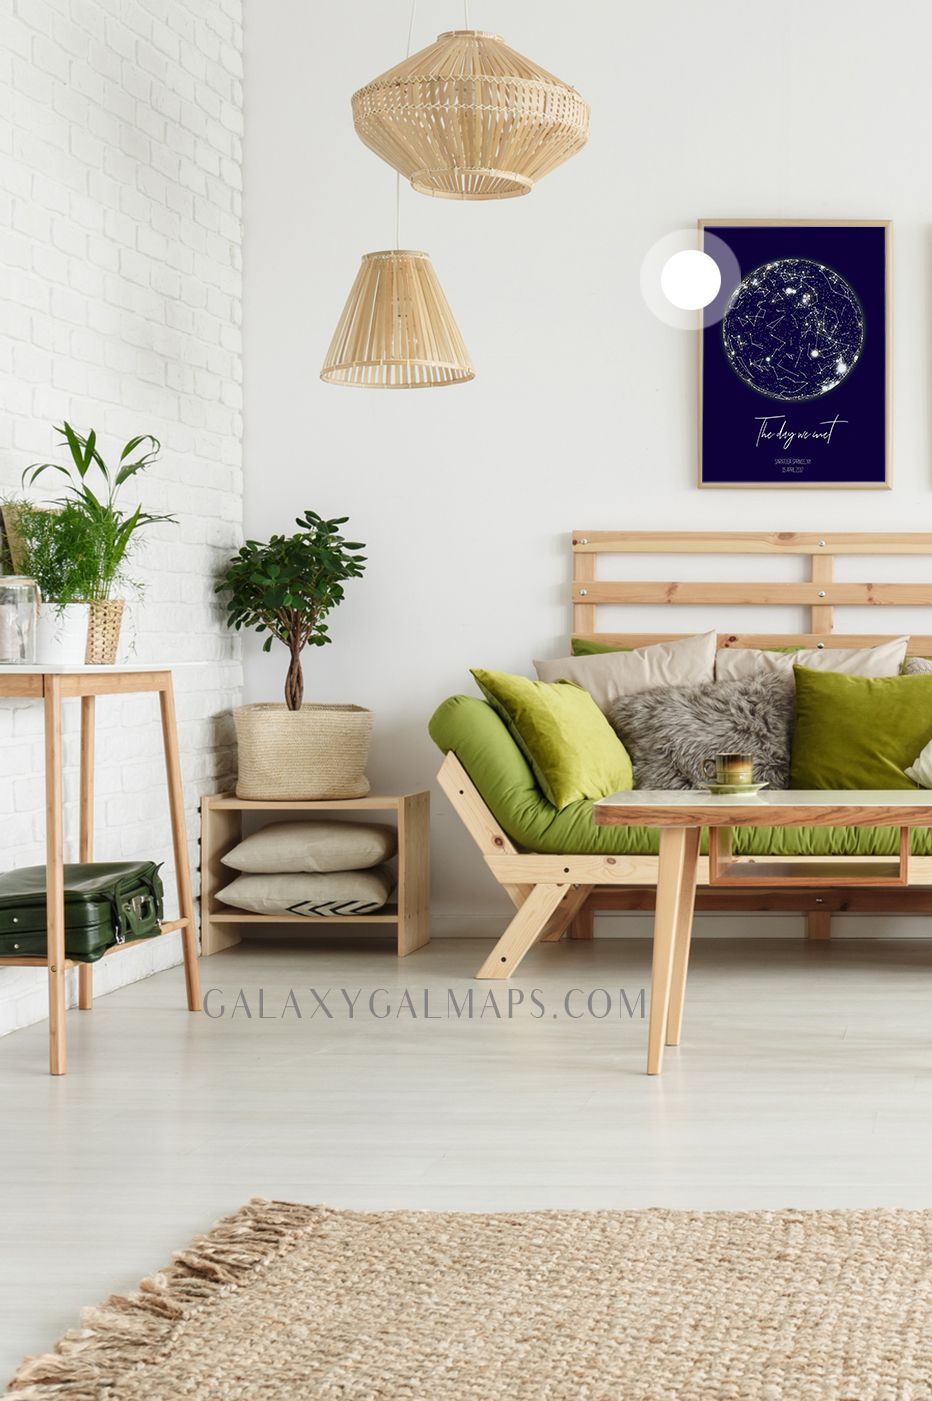 Personal star map by date and location custom map wall art happy